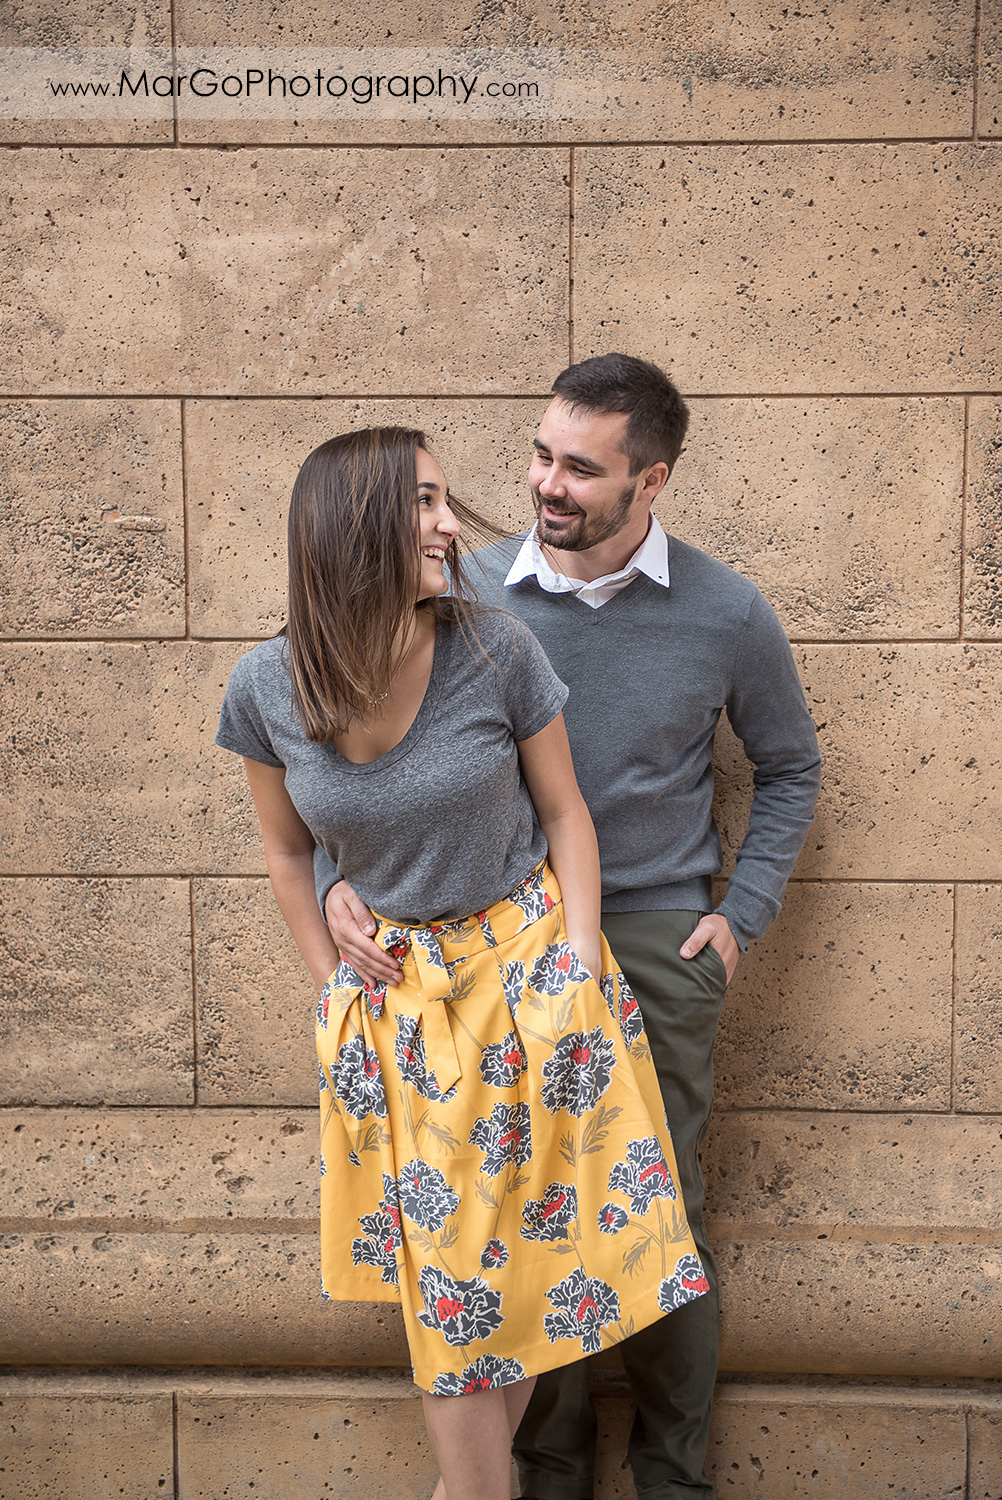 engagement session at Palace of Fine Arts in San Francisco - couple laughing on the stone wall